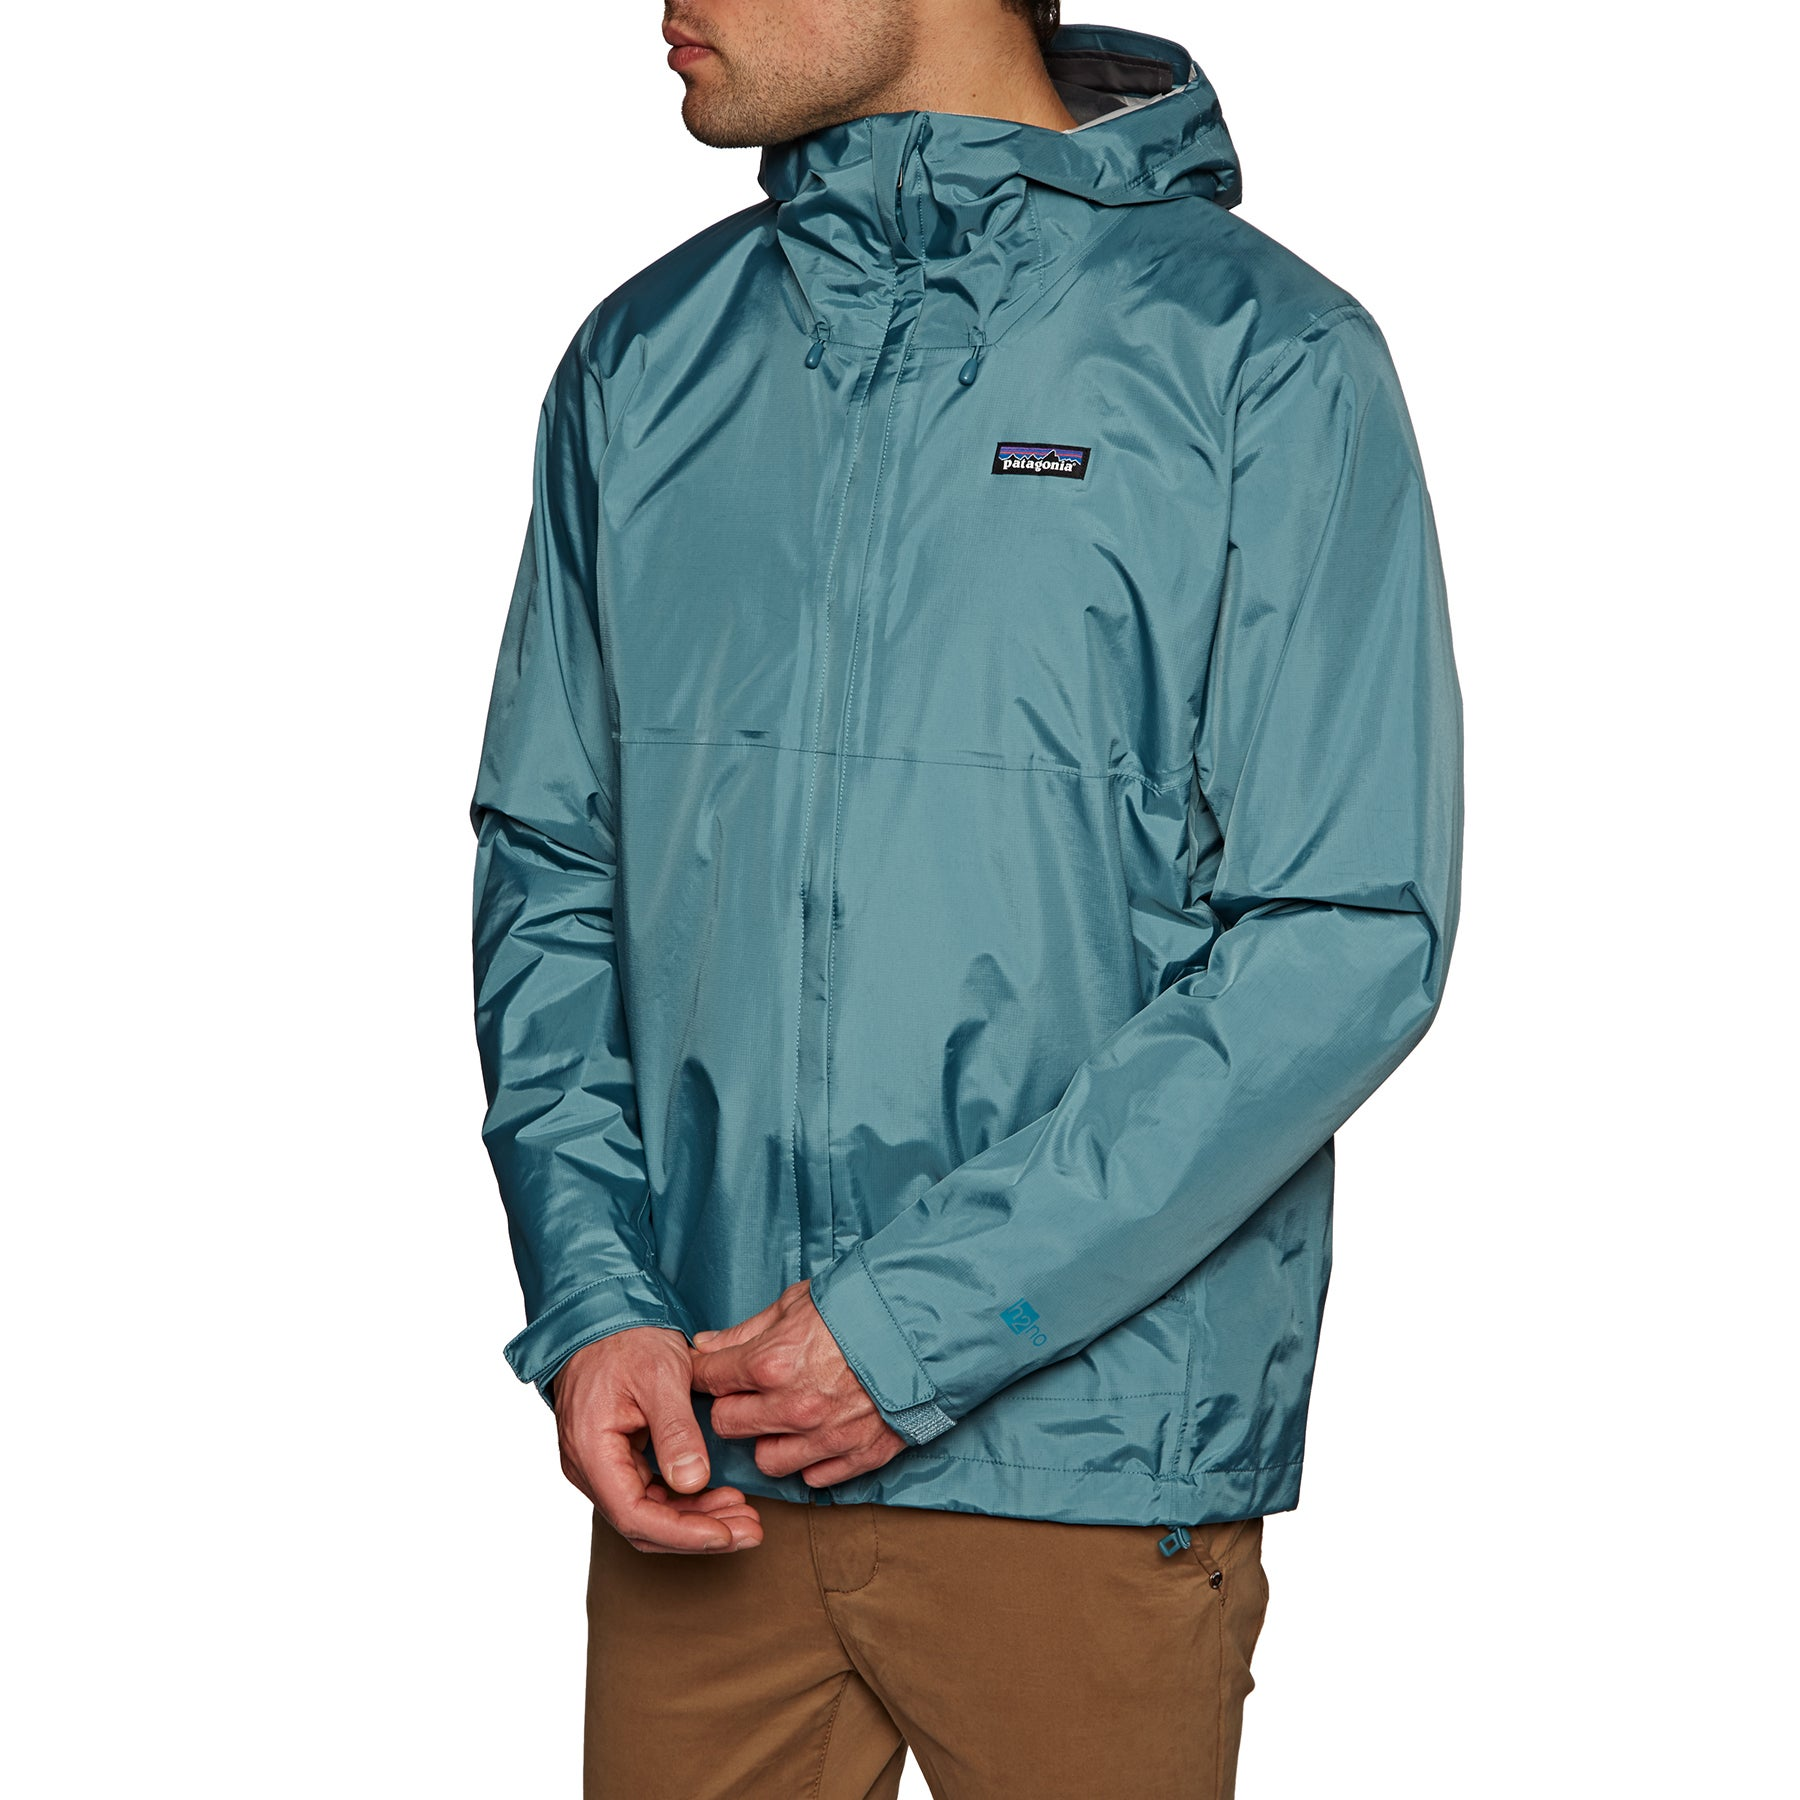 finest selection 60139 c21c2 Details about Patagonia Torrentshell Mens Jacket Coat - Tasmanian Teal All  Sizes